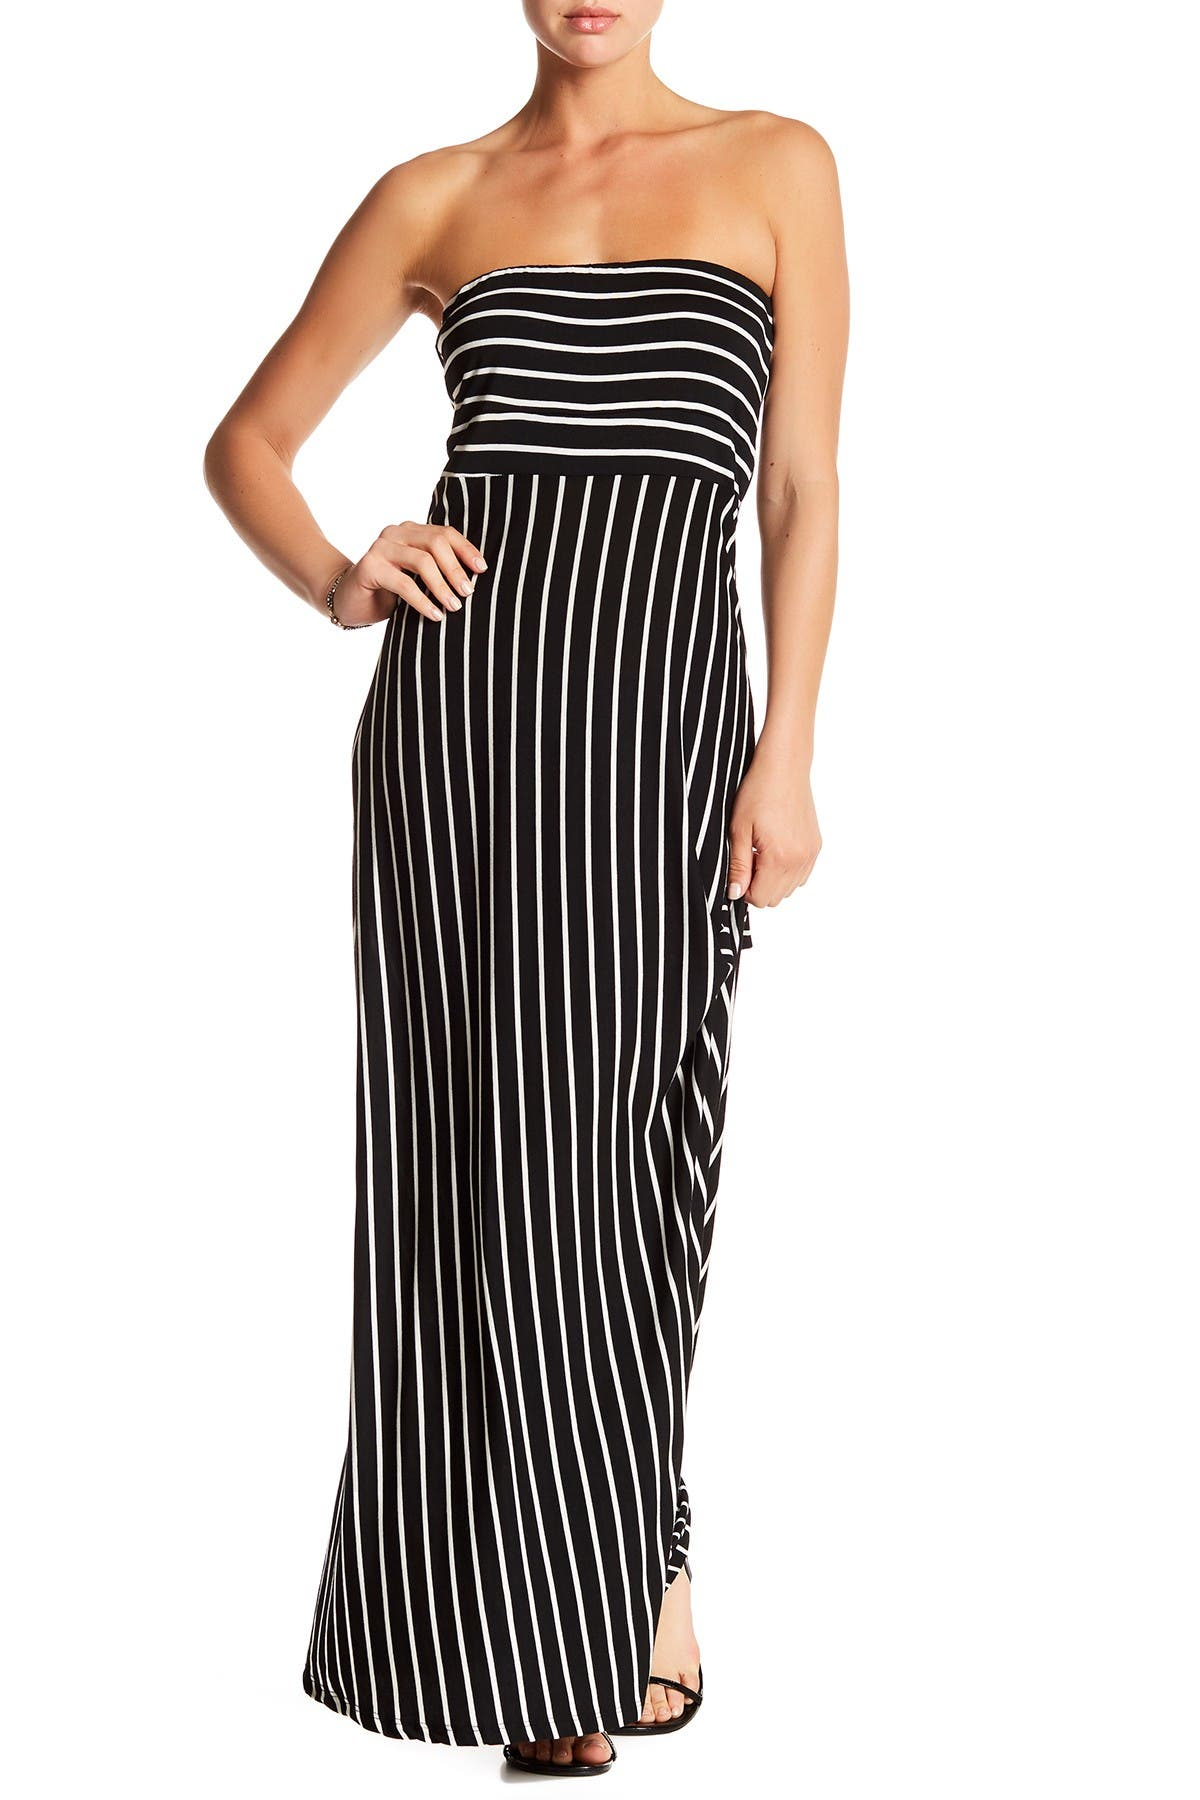 Image of WEST KEI Strapless Stripe Maxi Dress